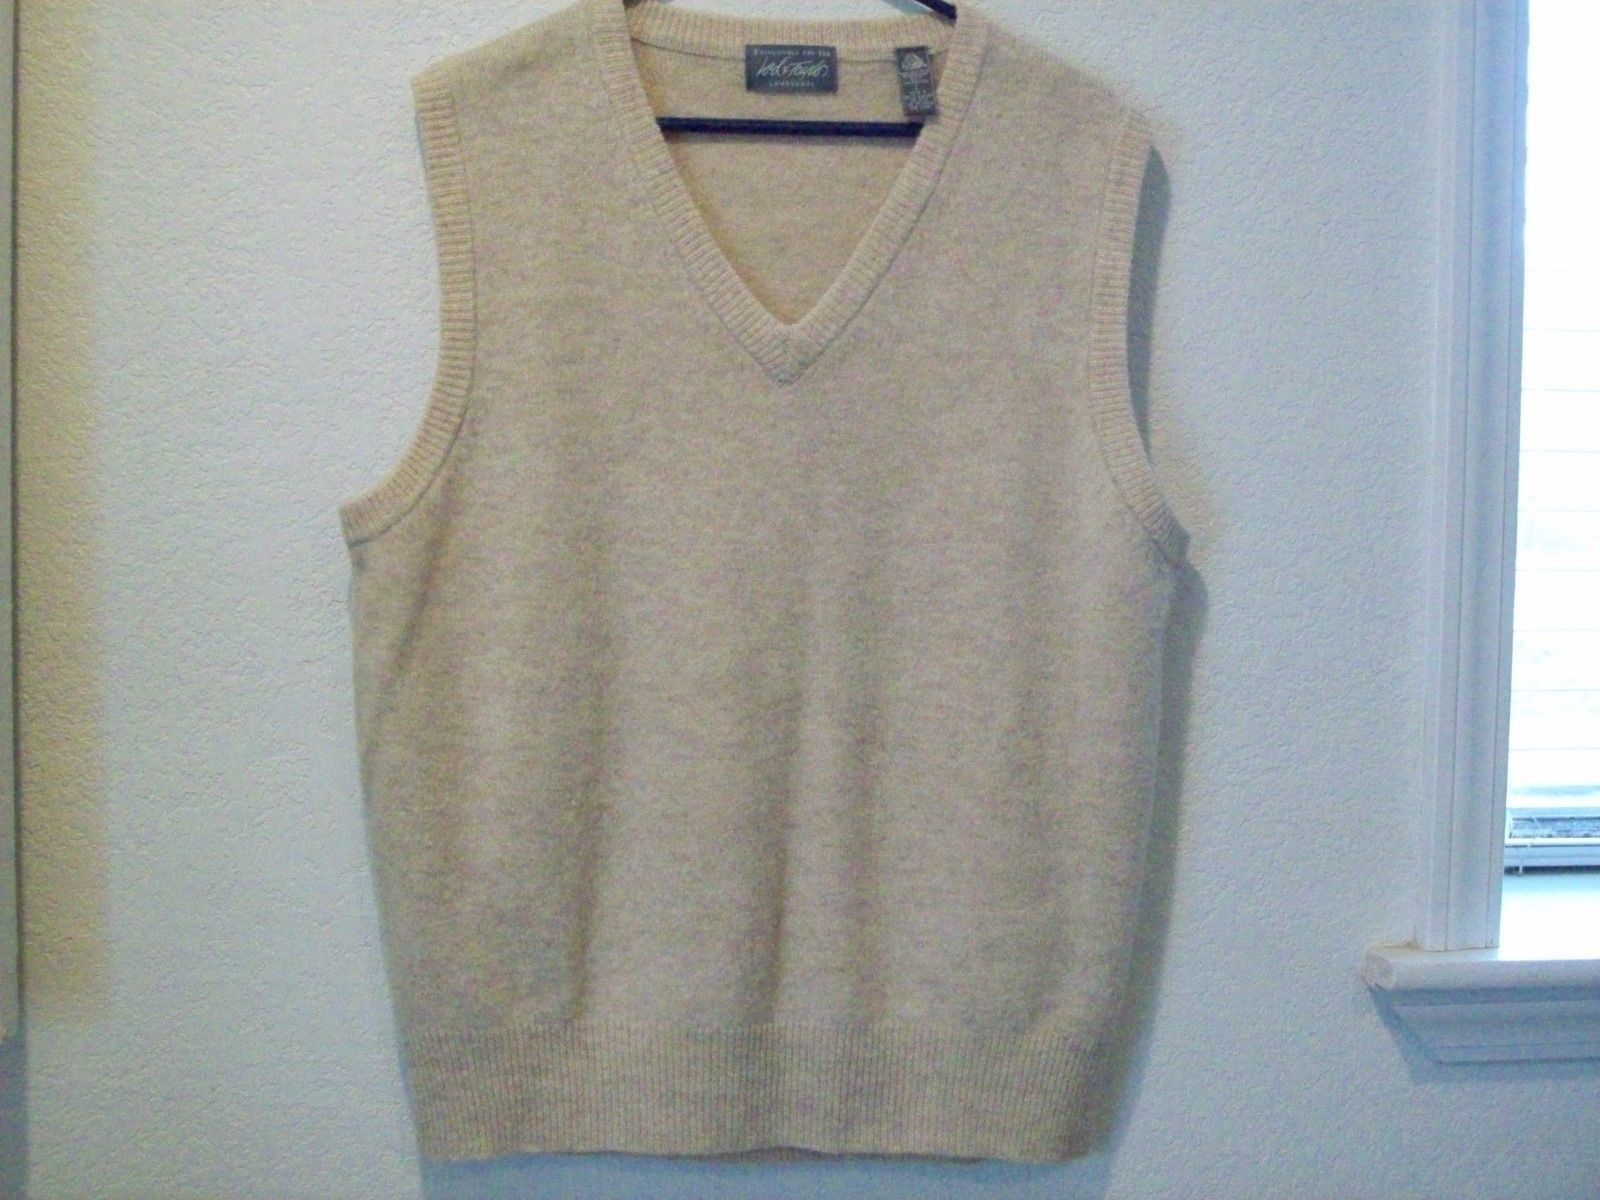 LORD & TAYLOR Men's Sweater Vest 100% Lamb's Wool Large Oatmeal ...